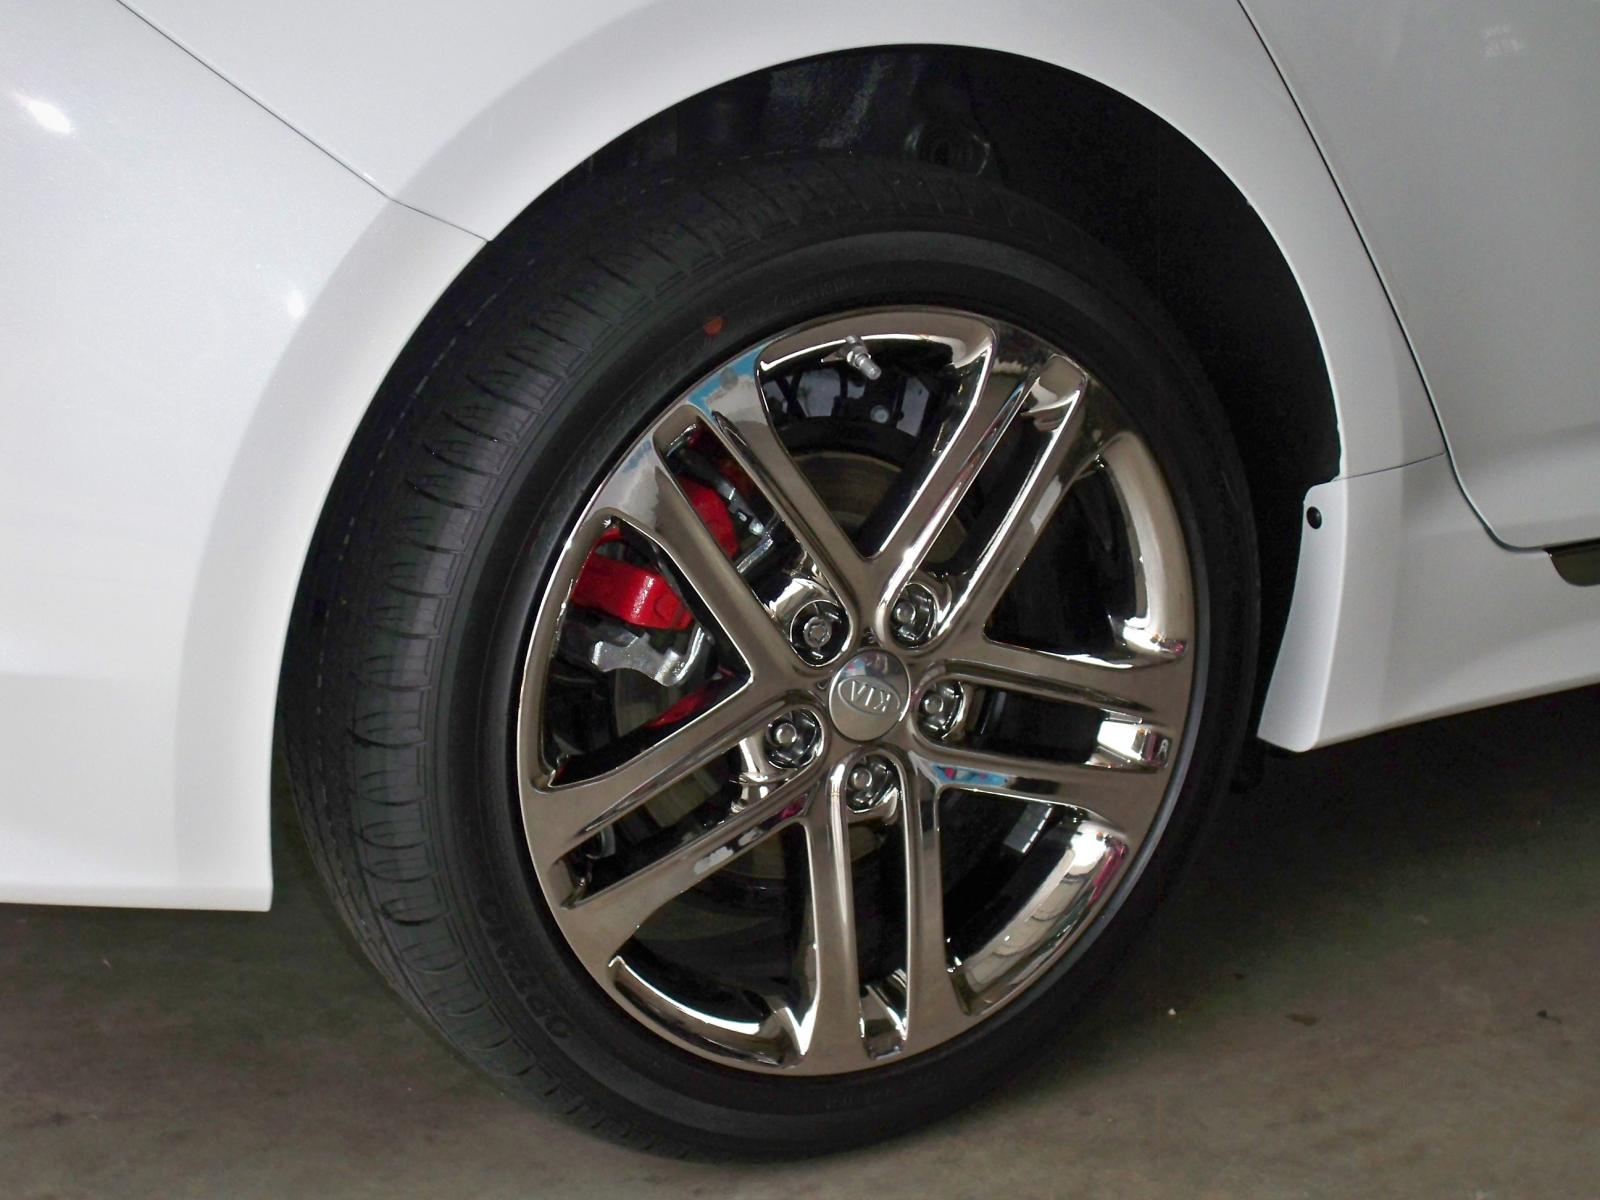 2013 SXL Chrome wheels and tires - stock OEM-101_2334.jpg